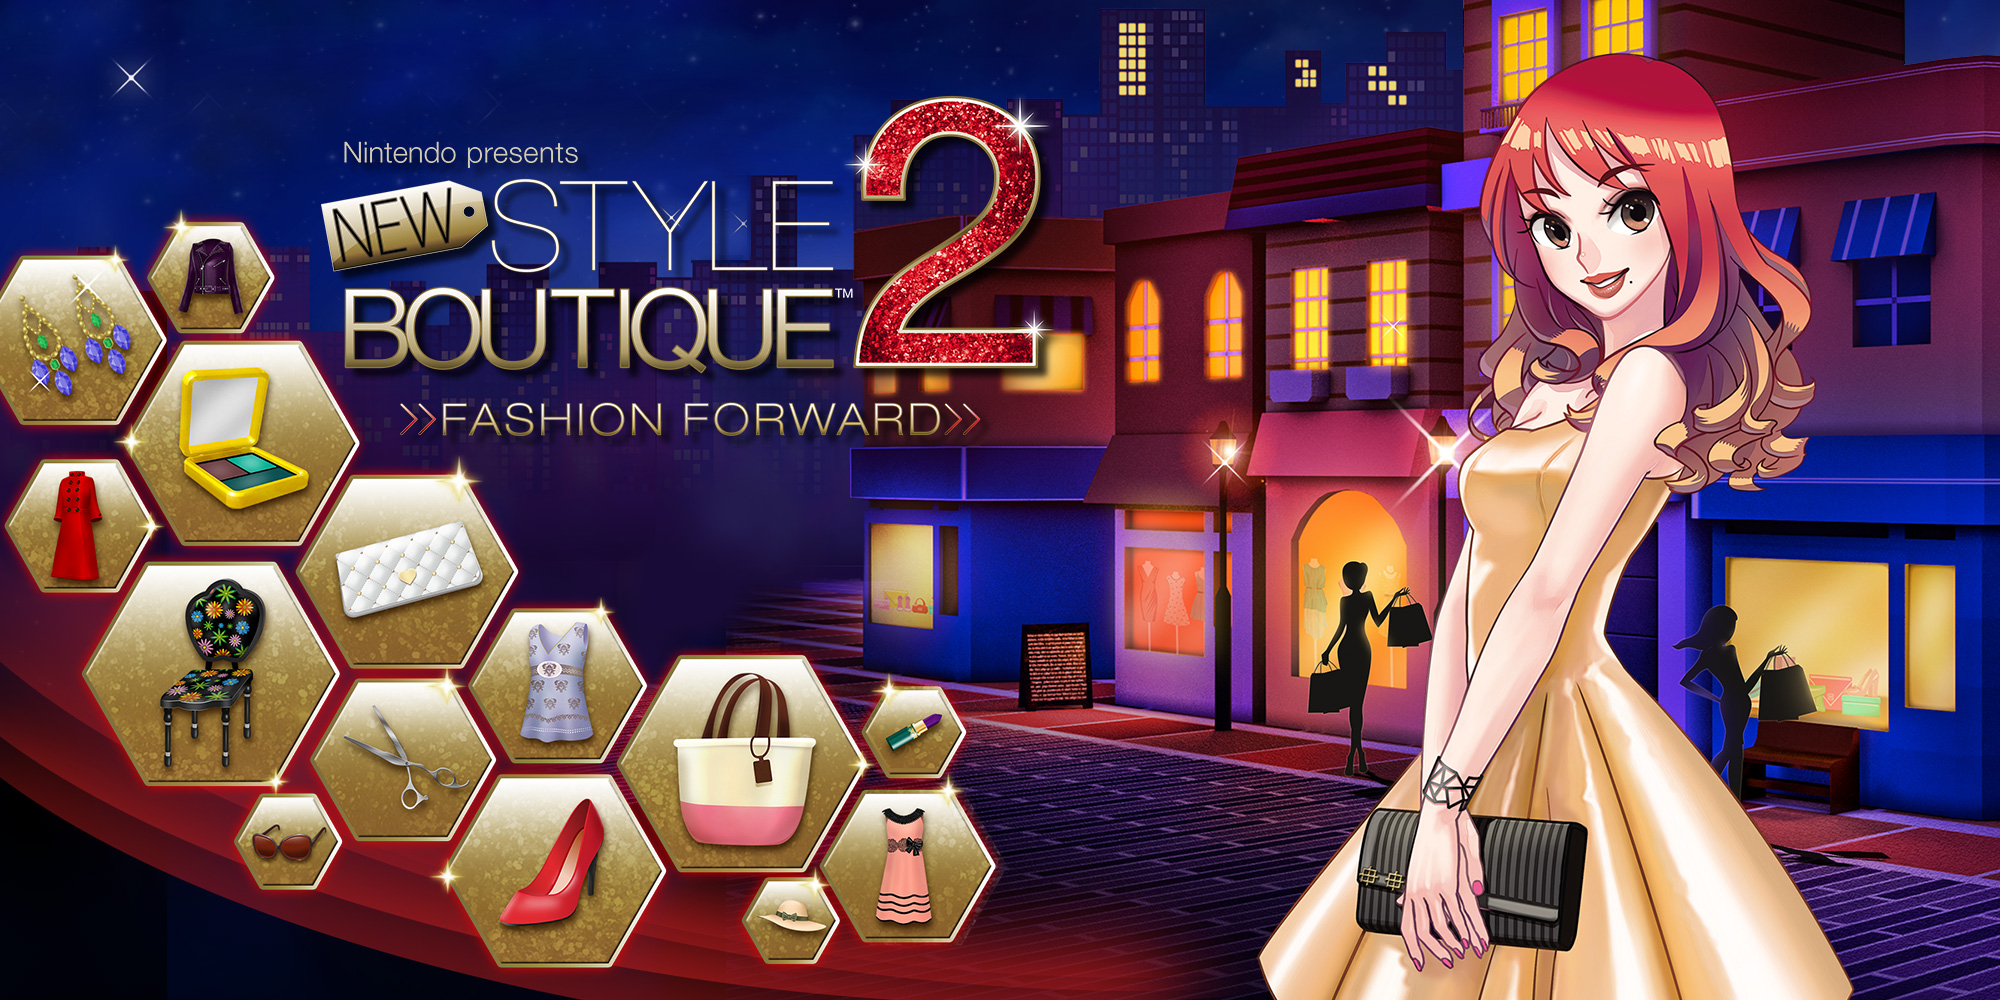 ... Style Boutique 2 - Fashion Forward | Nintendo 3DS | Games | Nintendo